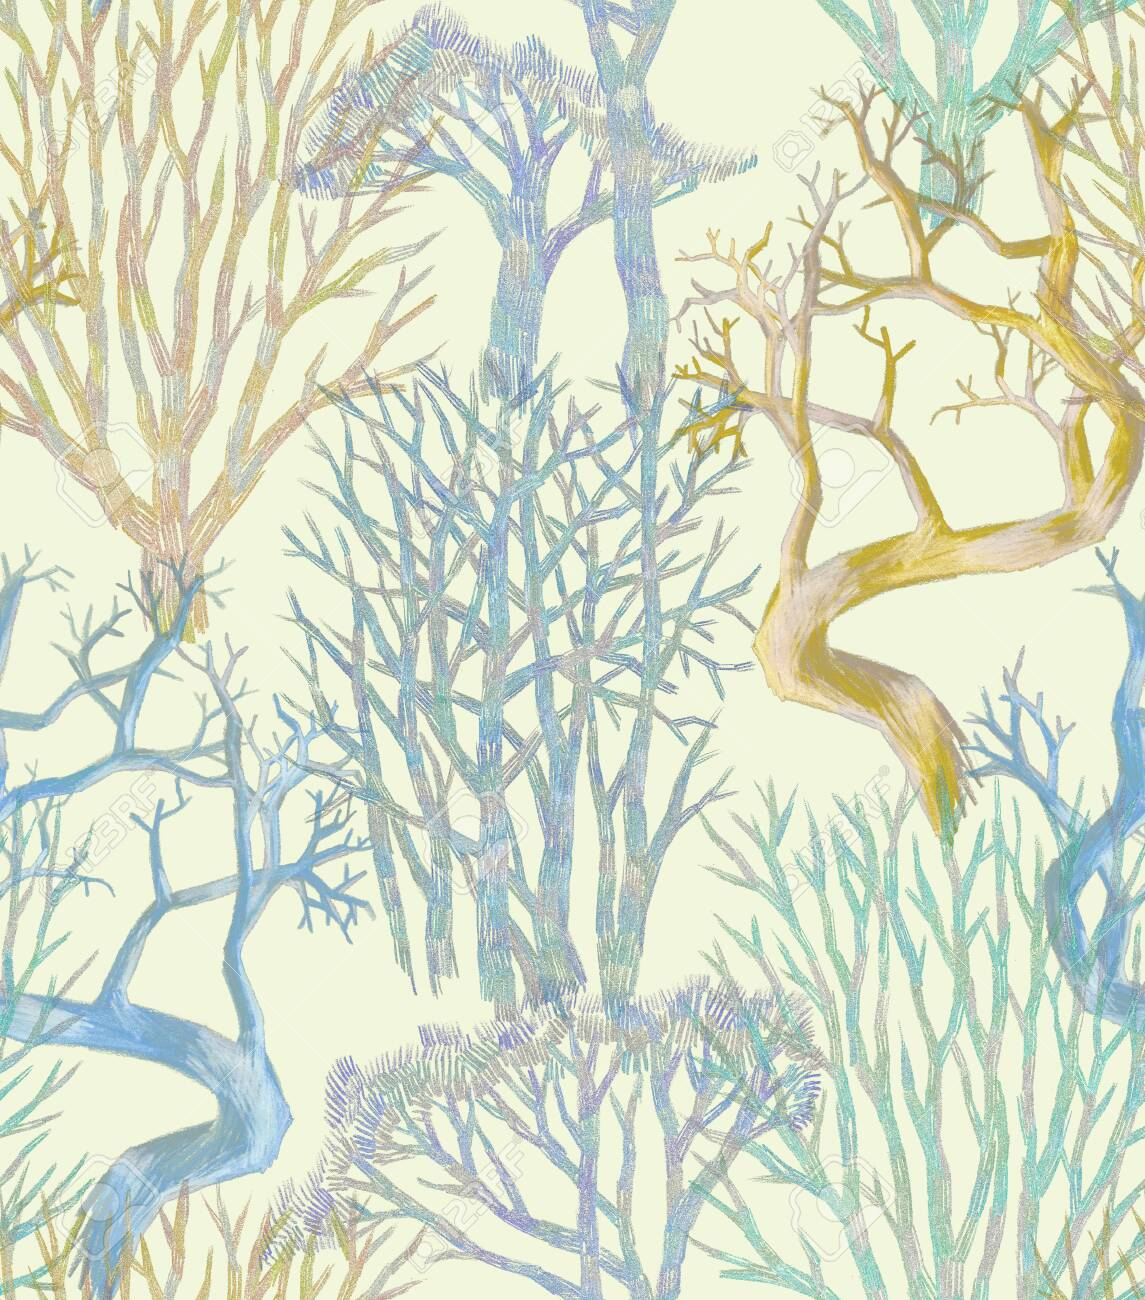 Minimalist Style Seamless Pattern Hand Drawn Bare Trees Branches Stock Photo Picture And Royalty Free Image Image 141090770